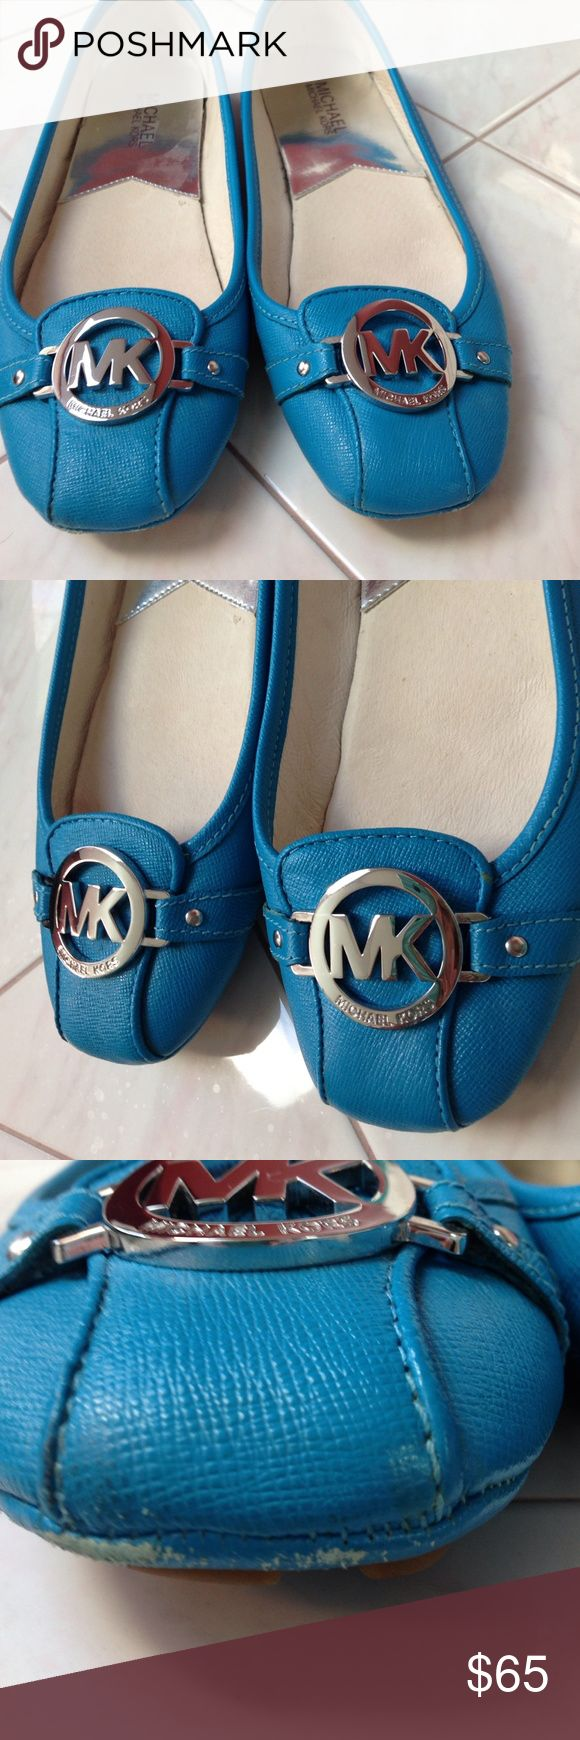 Michael Kors Flats Michael Kors flats. Worn a couple times. Some minor scuffing shown in photos which can be fixed with a little polish. Gorgeous blue color with silver tone accents. Leather upper MICHAEL Michael Kors Shoes Flats & Loafers